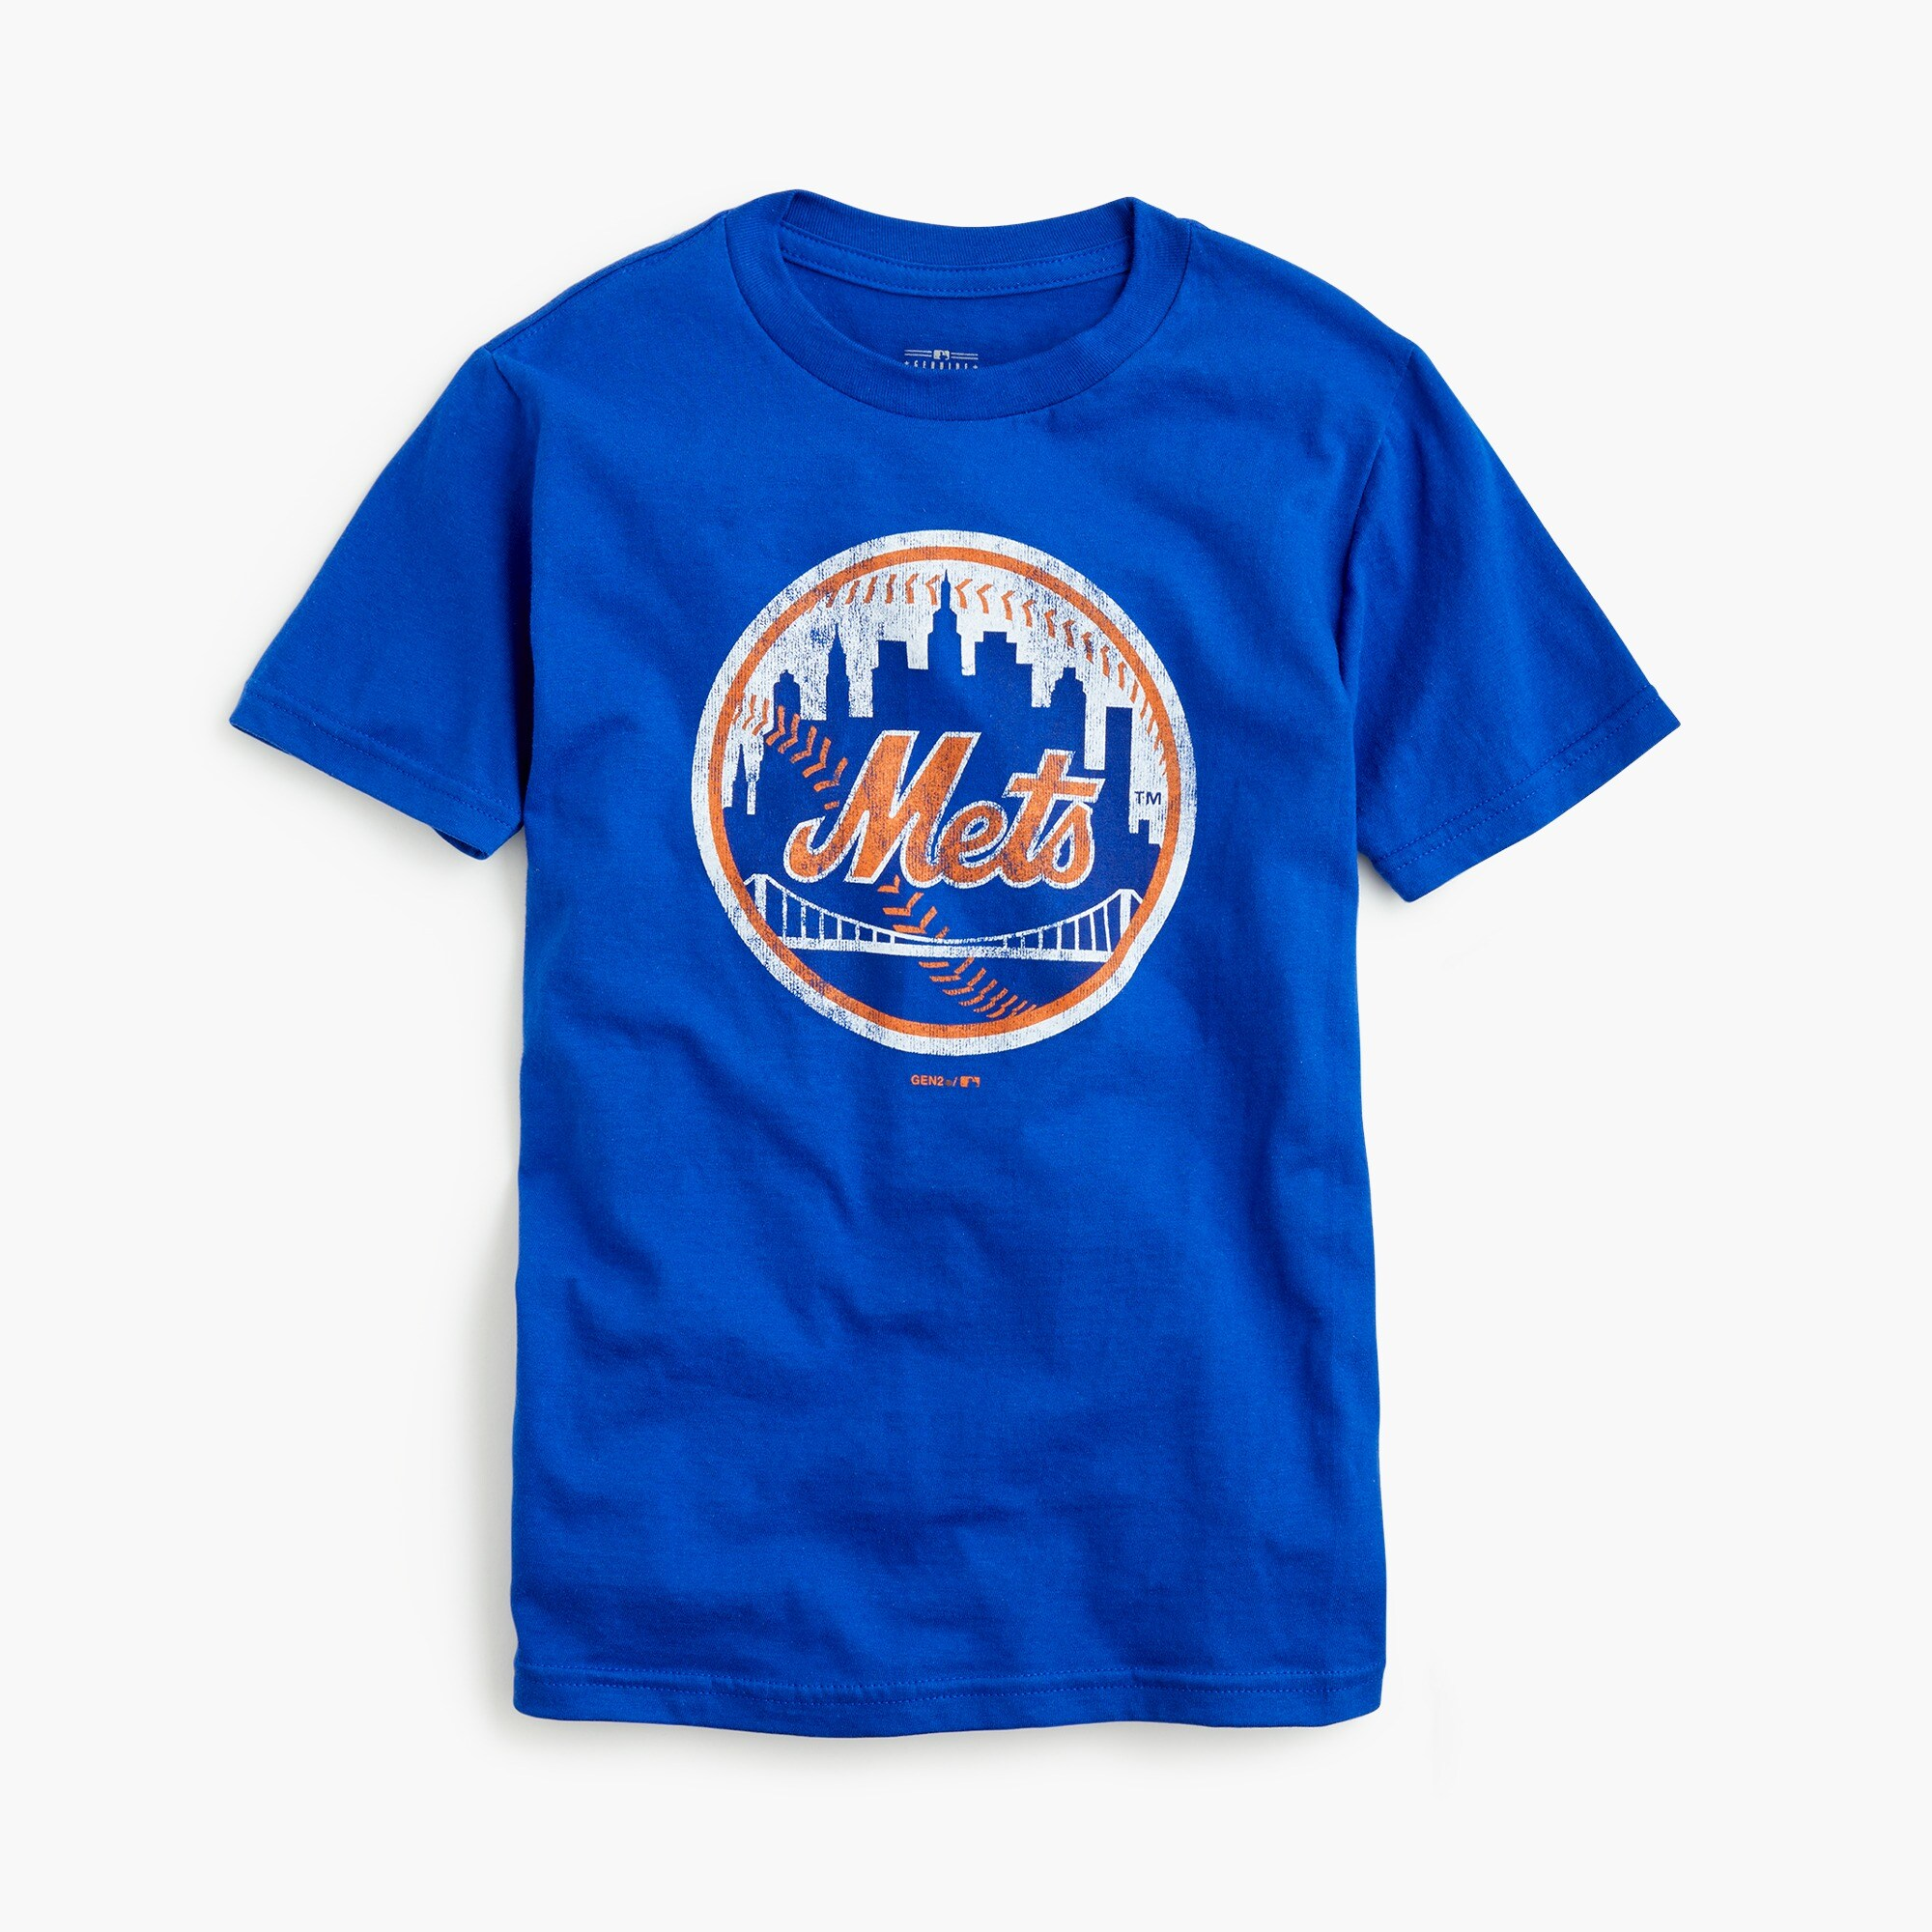 Image 1 for Kids' New York Mets T-shirt